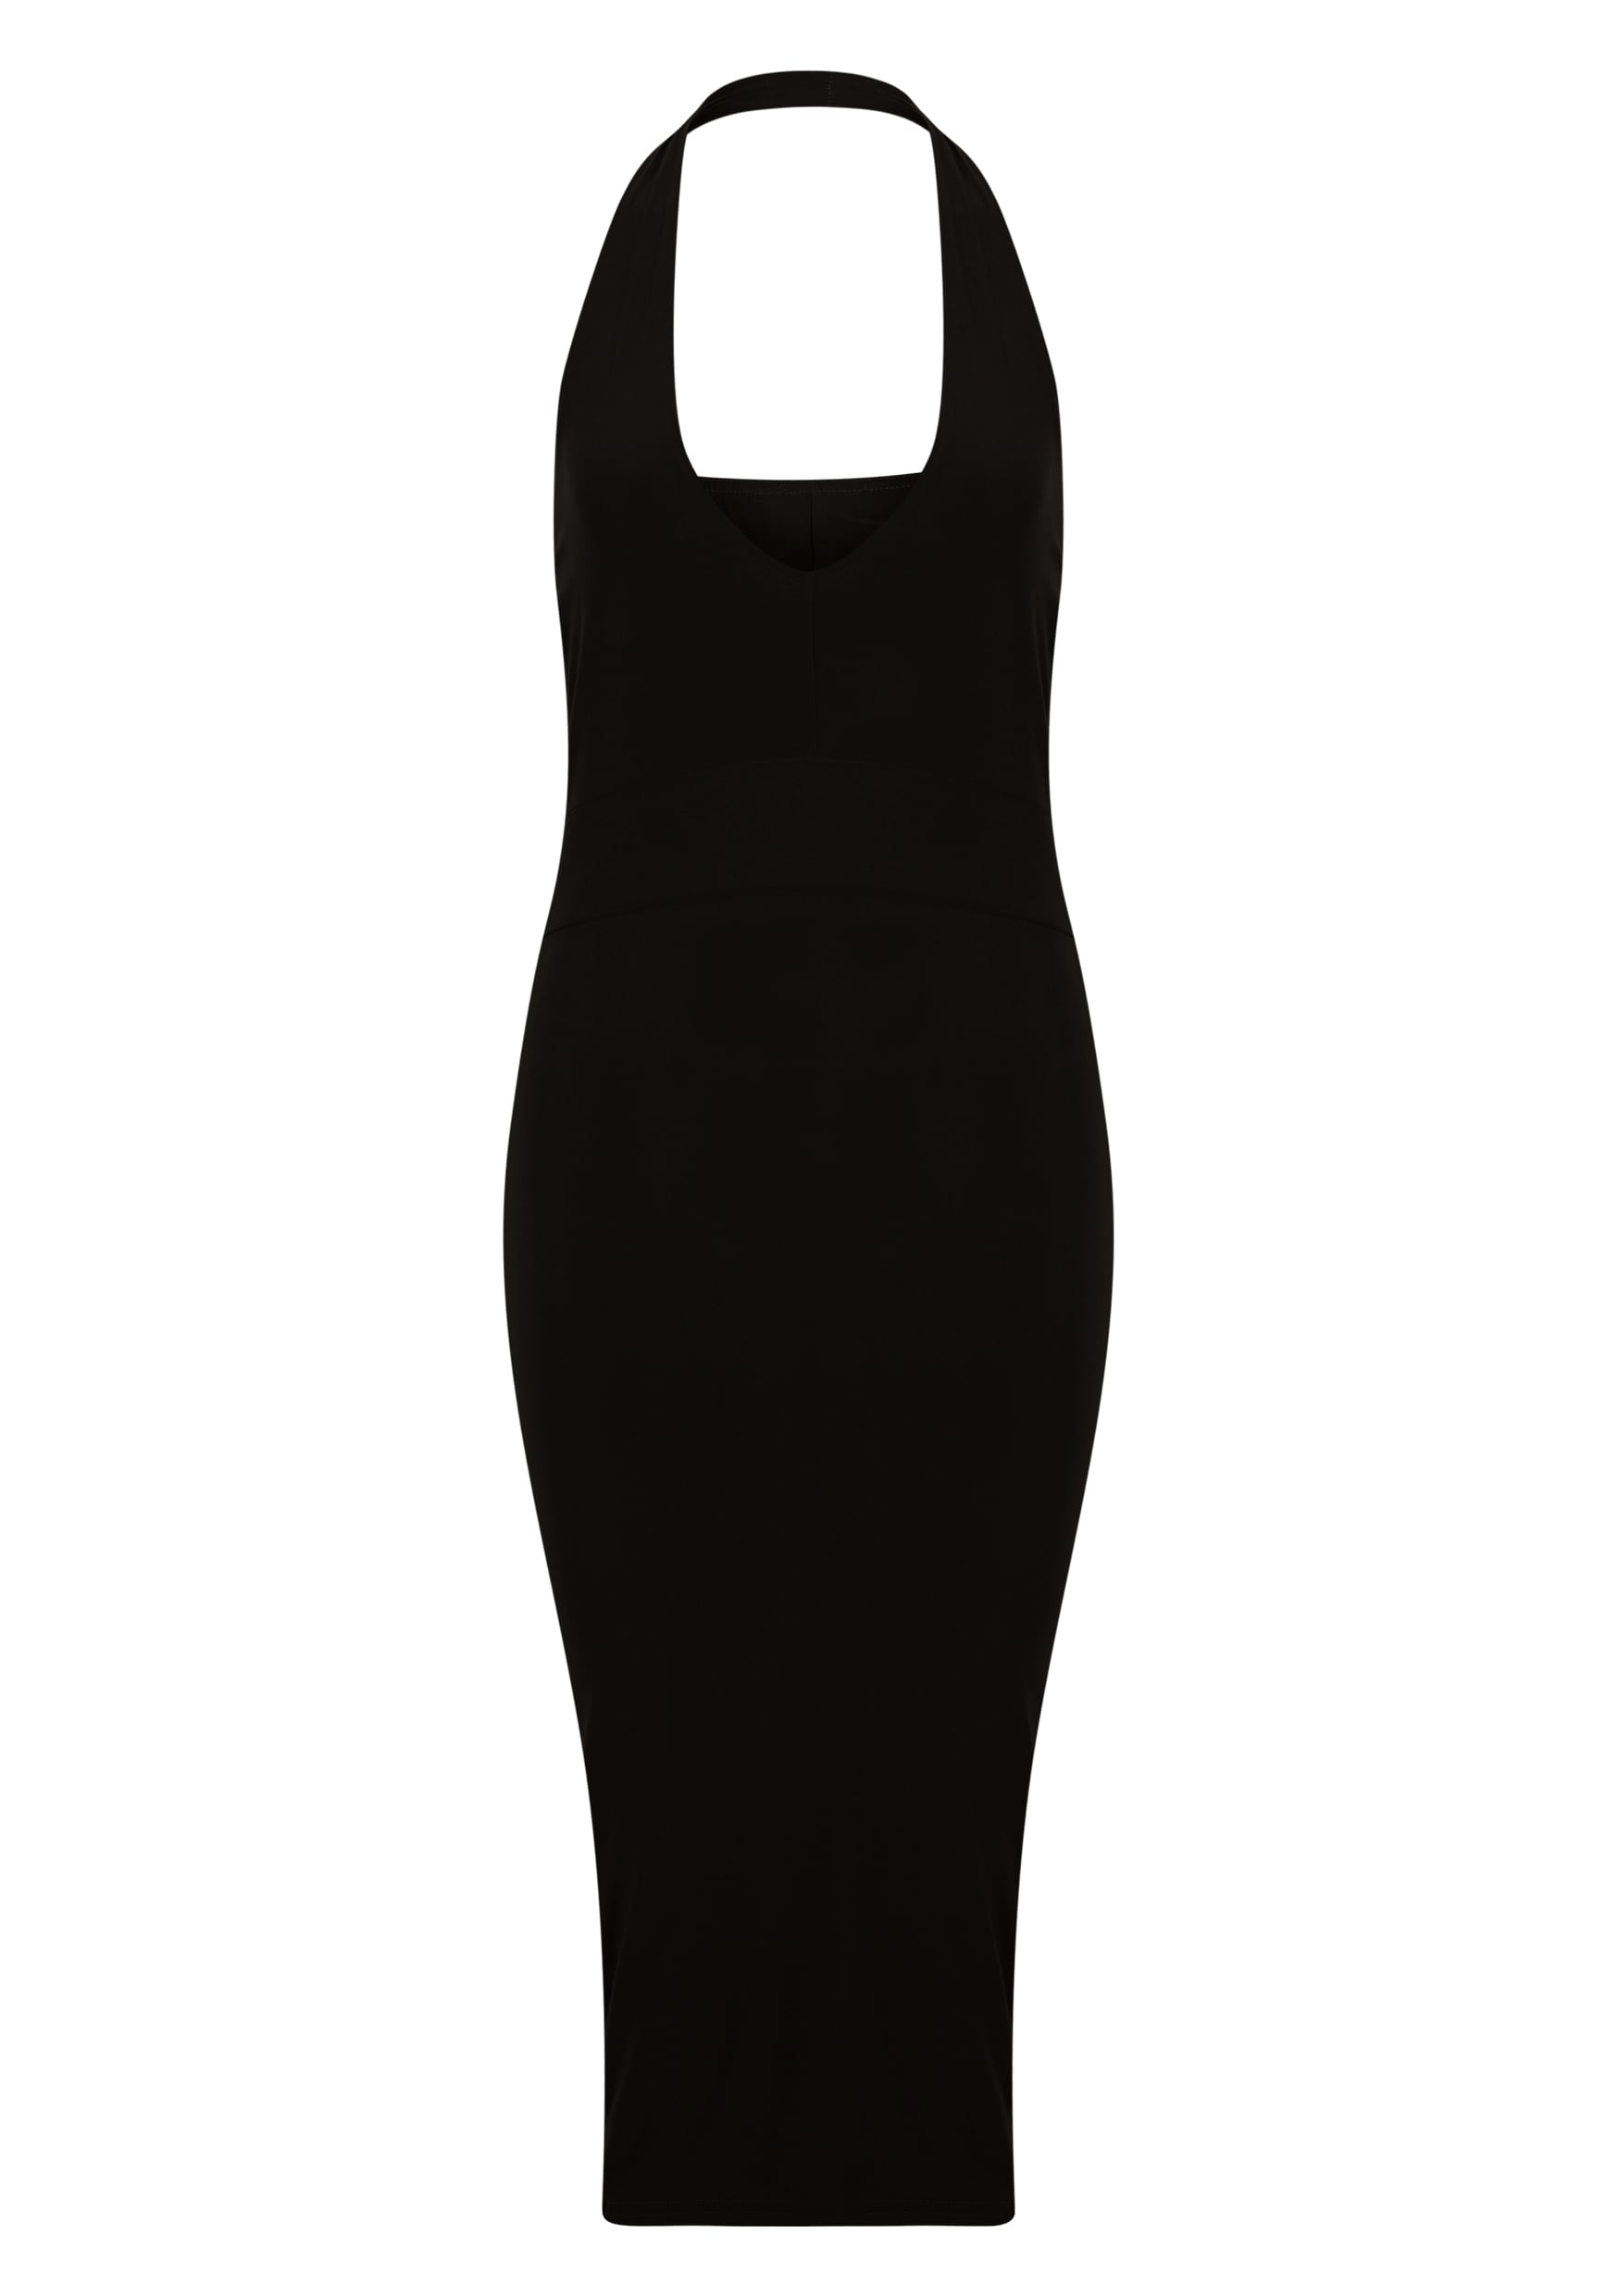 Lilly Black Slinky Halterneck Midi Dress 5